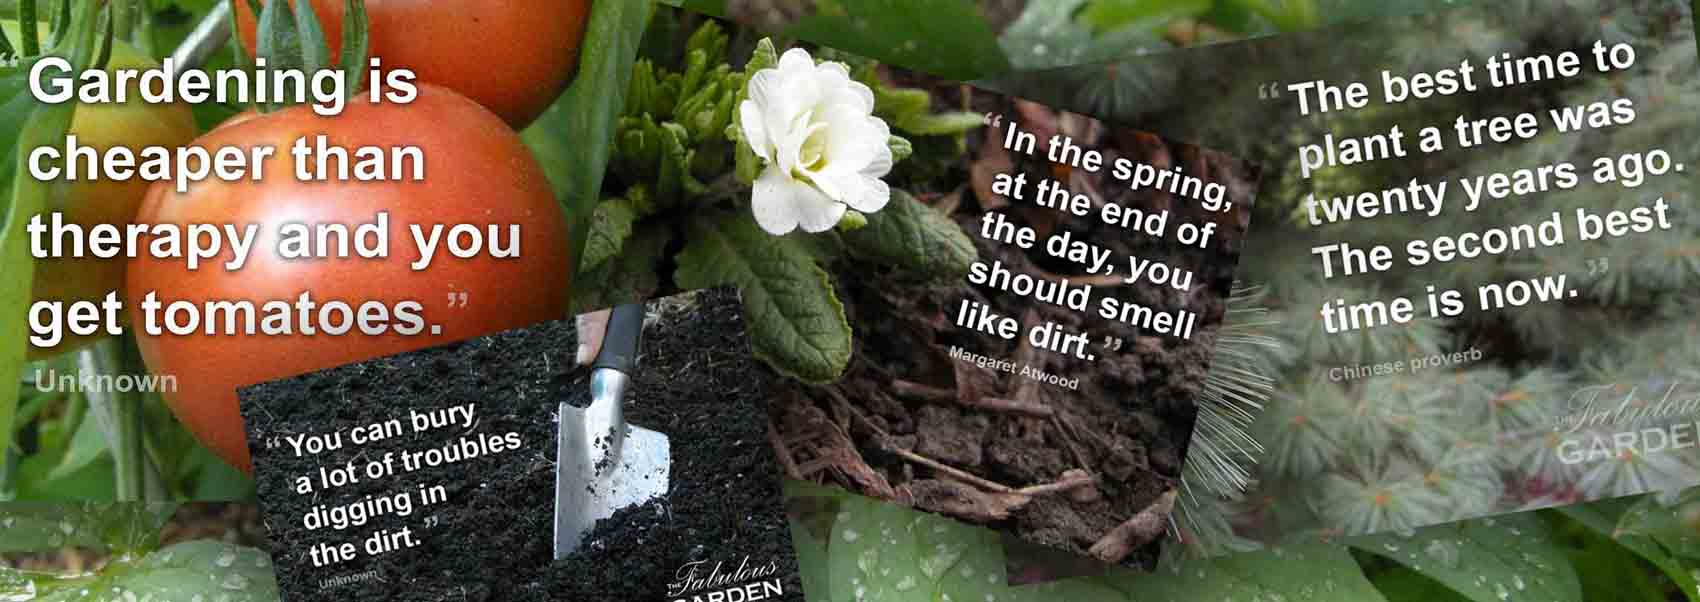 Garden quotes and sayings